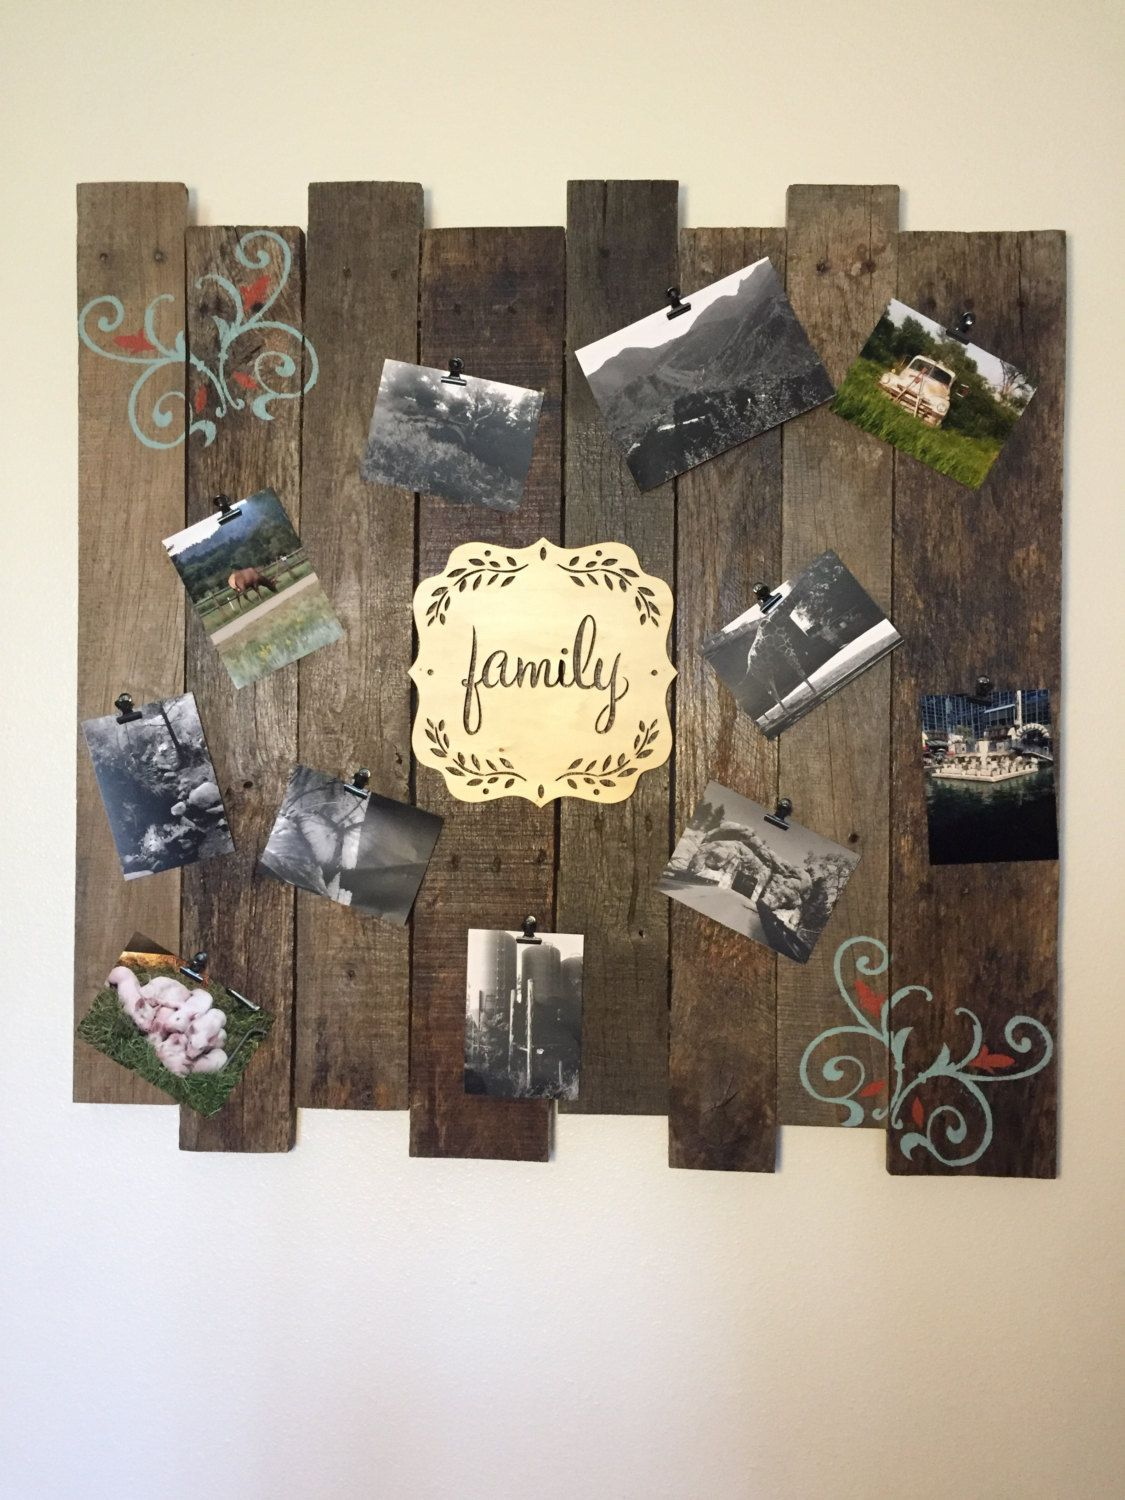 Picture Memory Board Natural Wood Decoration Wooden Wall Decor Collage Rustic Frame By Craftedsimplyinc On Etsy